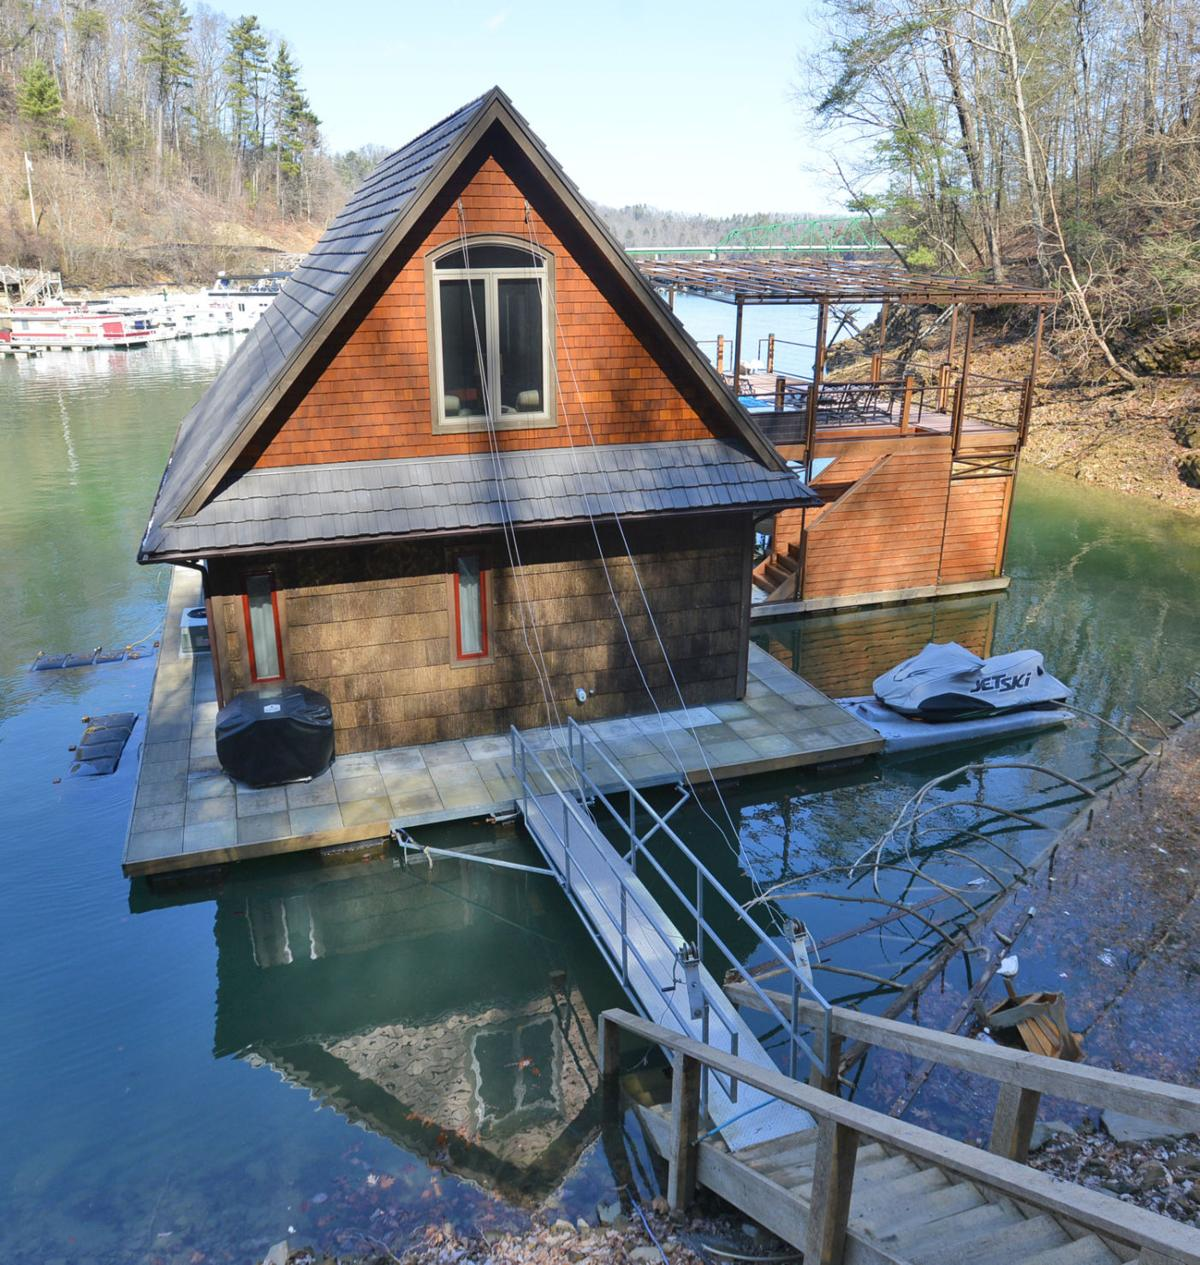 A way of life on the lake facing change   Local News   heraldcourier com